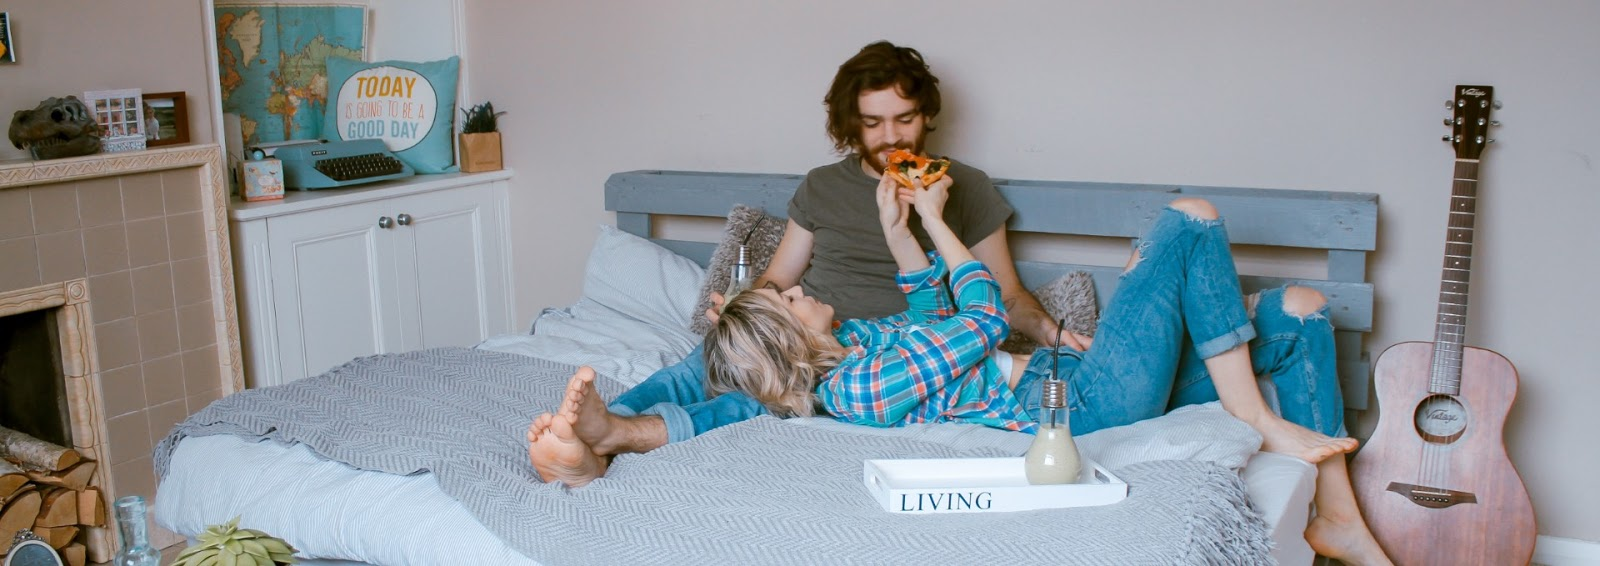 Man and woman eating snacks in bed